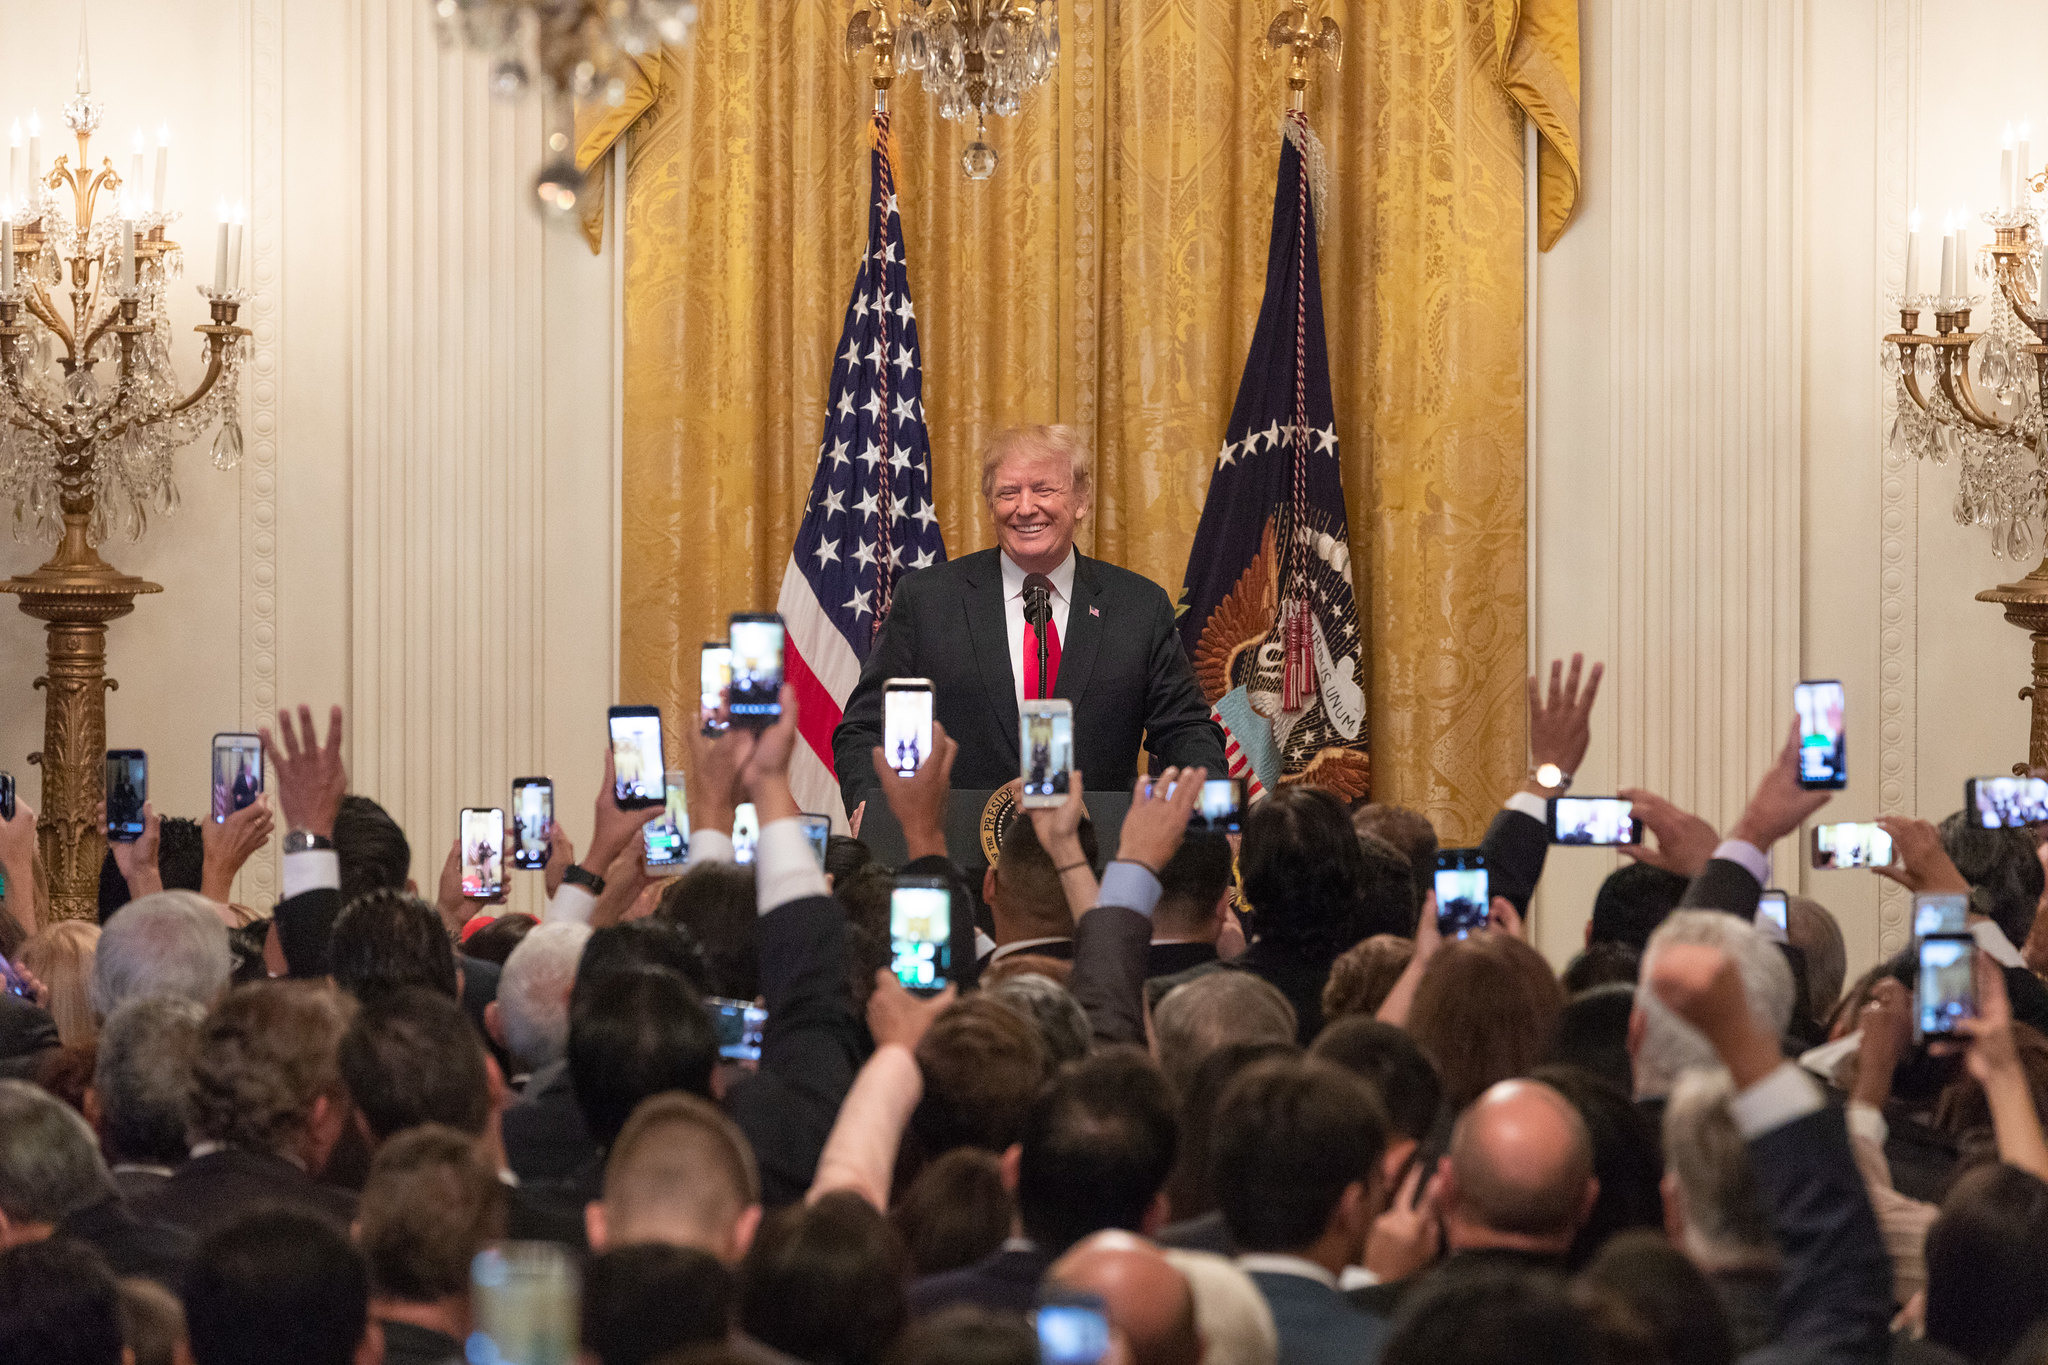 President Donald J. Trump delivers remarks at the Hispanic Heritage Month celebration Monday, Sept. 17, 2018, in the East Room of the White House. (Official White House Photo by Joyce N. Boghosian)